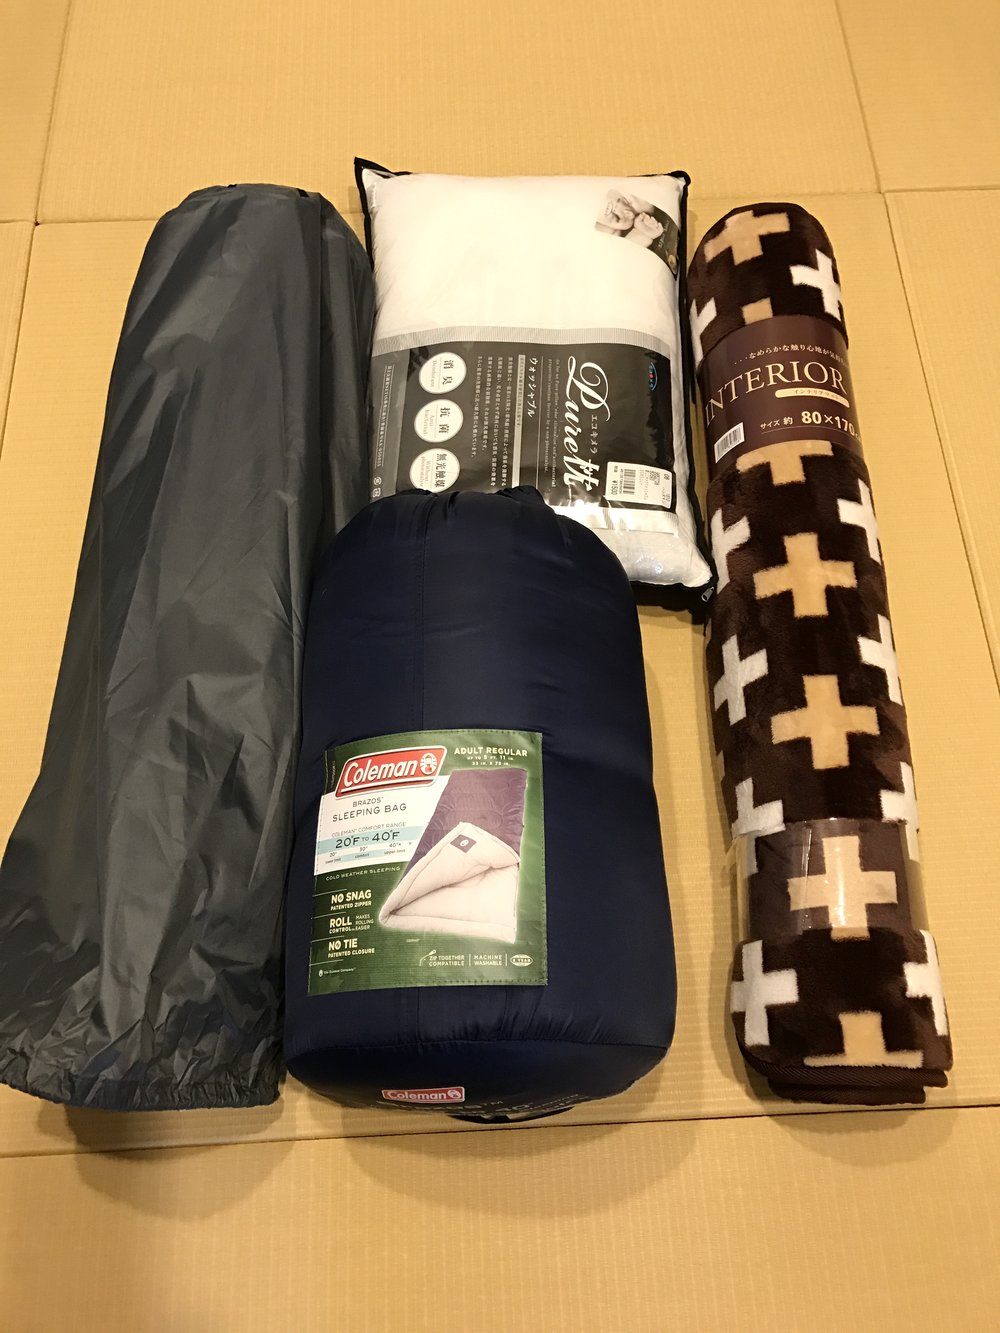 Tesla Models S sleeping set: air mattresses, sleeping bag, pillow and mat.